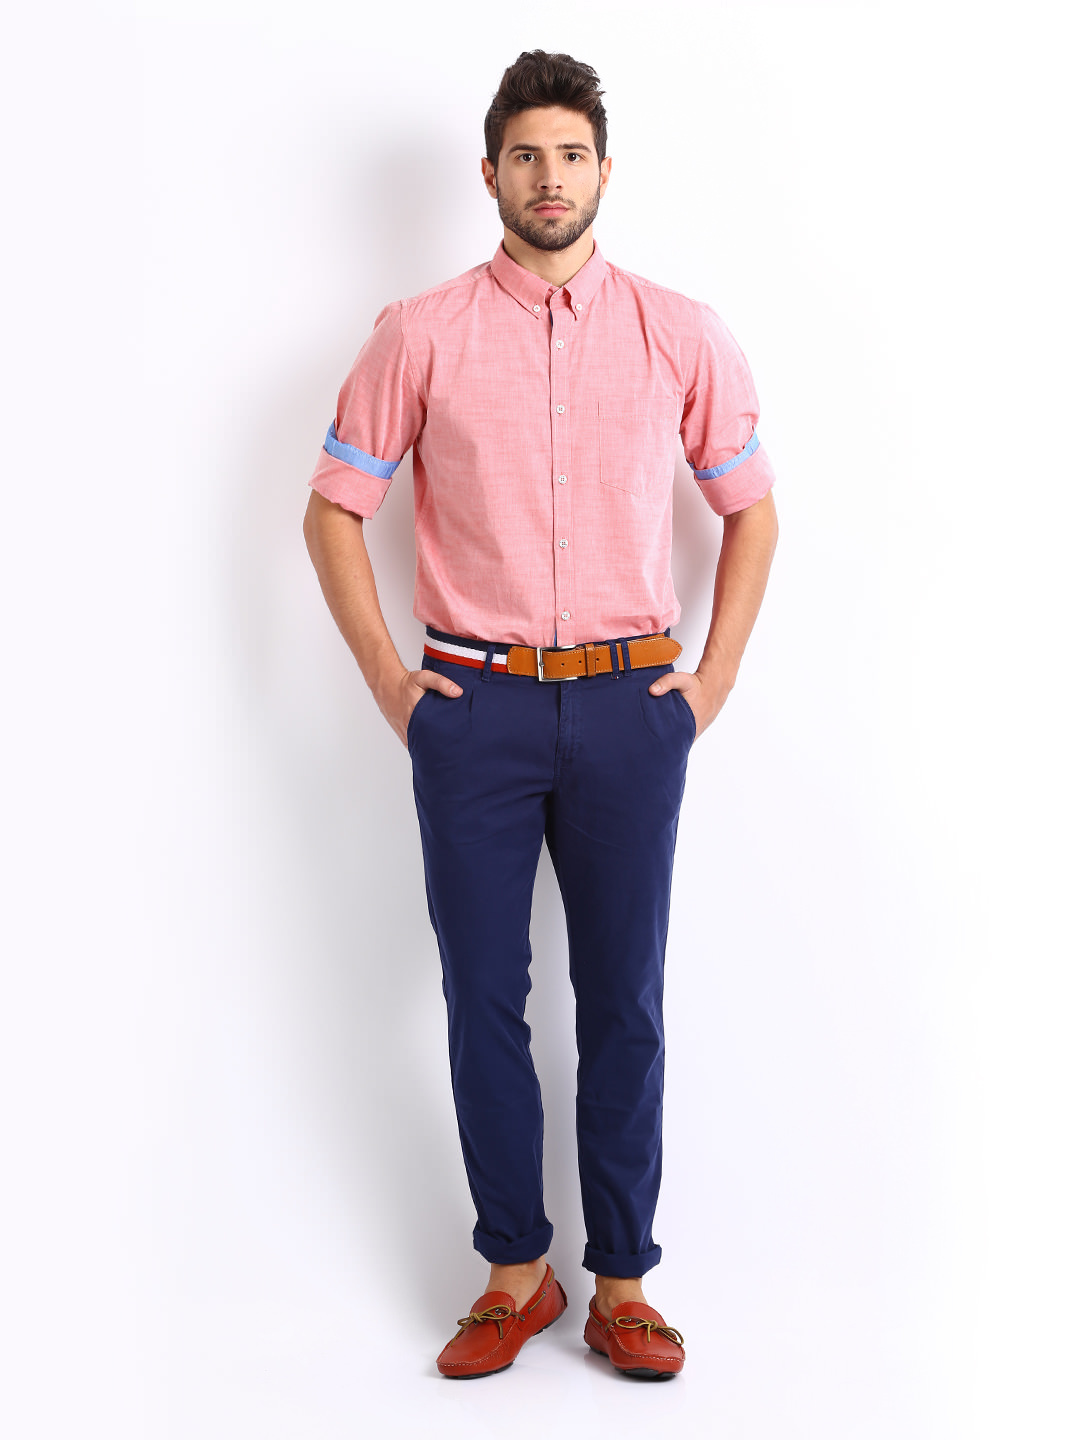 casual pink shirt for men shirt | artee shirt - part 289 FXWSIOR